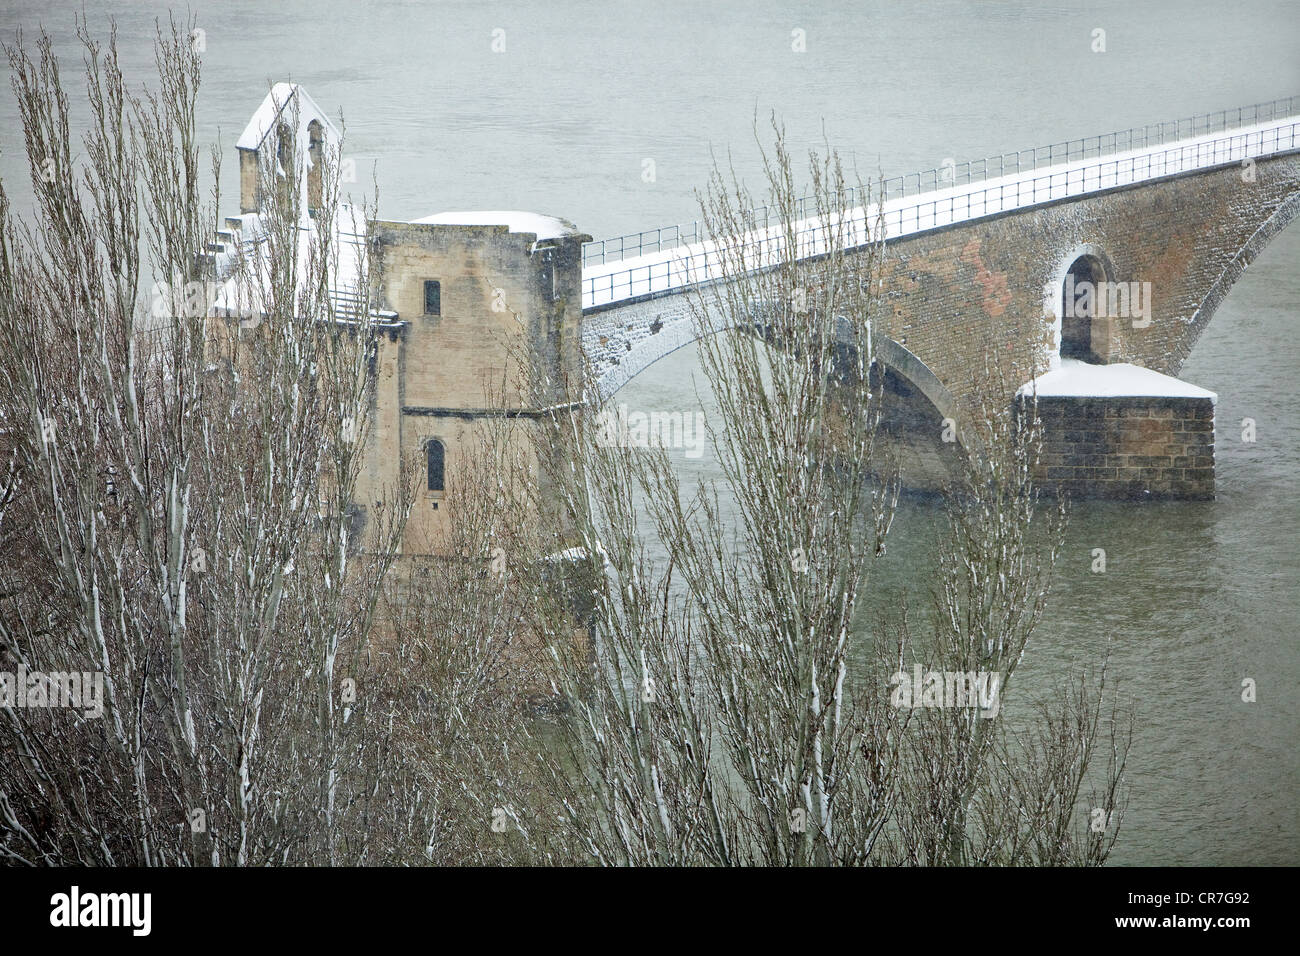 France, Vaucluse, Avignon, Pont Saint Benezet built in the XIIth century on the Rhone - Stock Image